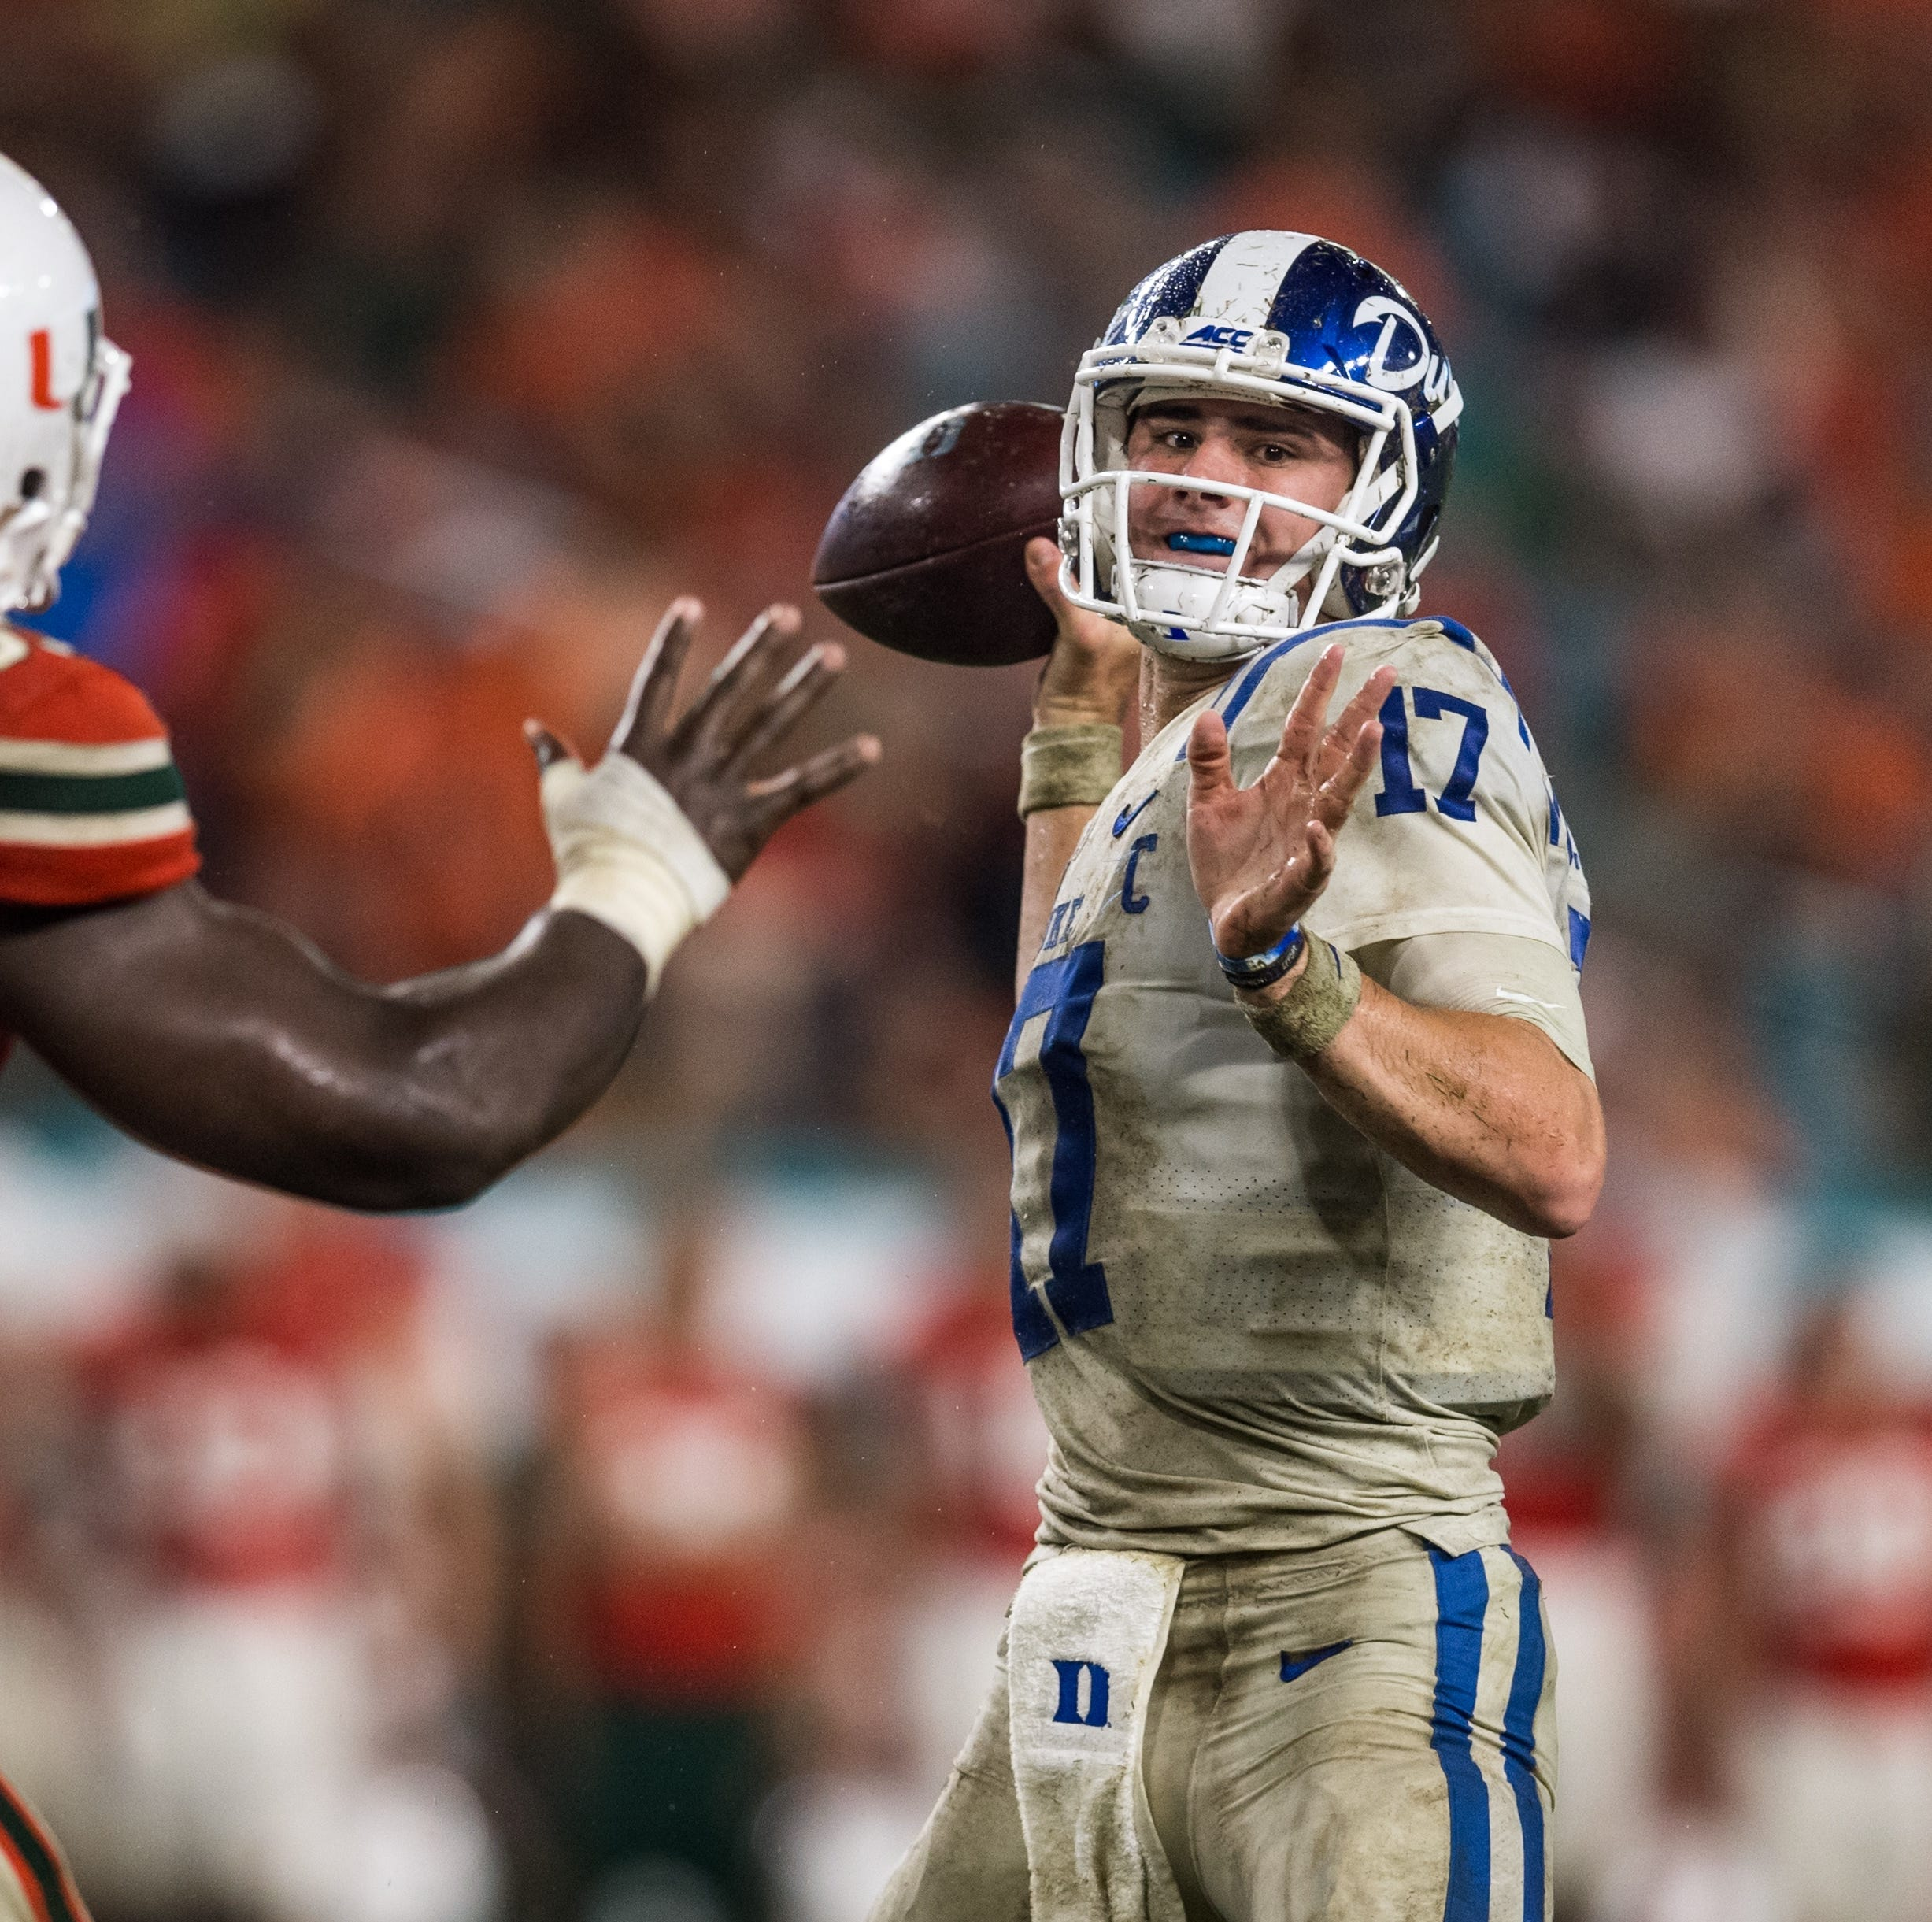 5 things to know about New York Giants No. 6 overall pick Daniel Jones